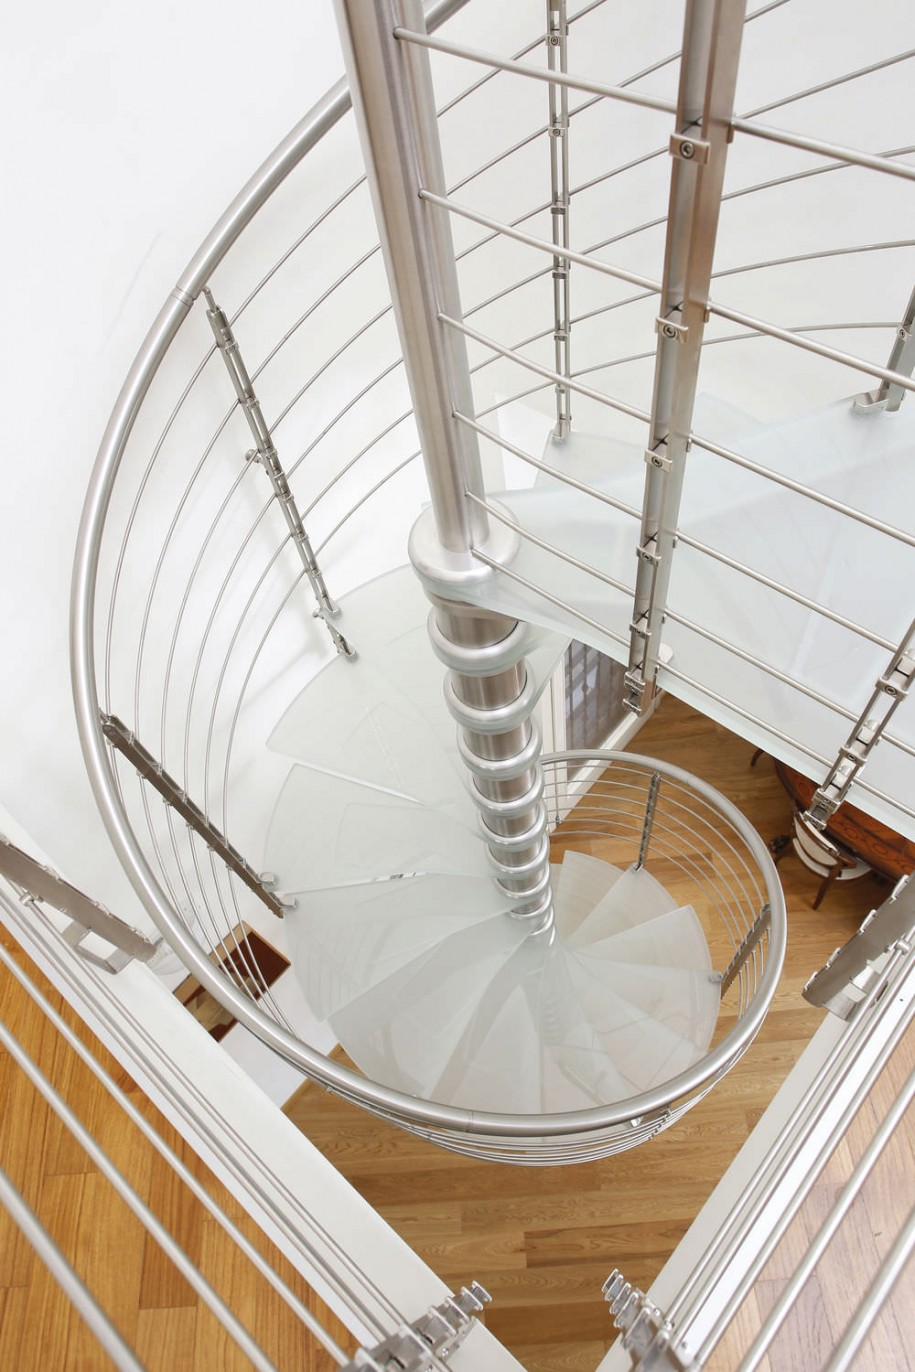 fascinating-interior-cool-spiral-staircases-with-metal-stringer-design-idea